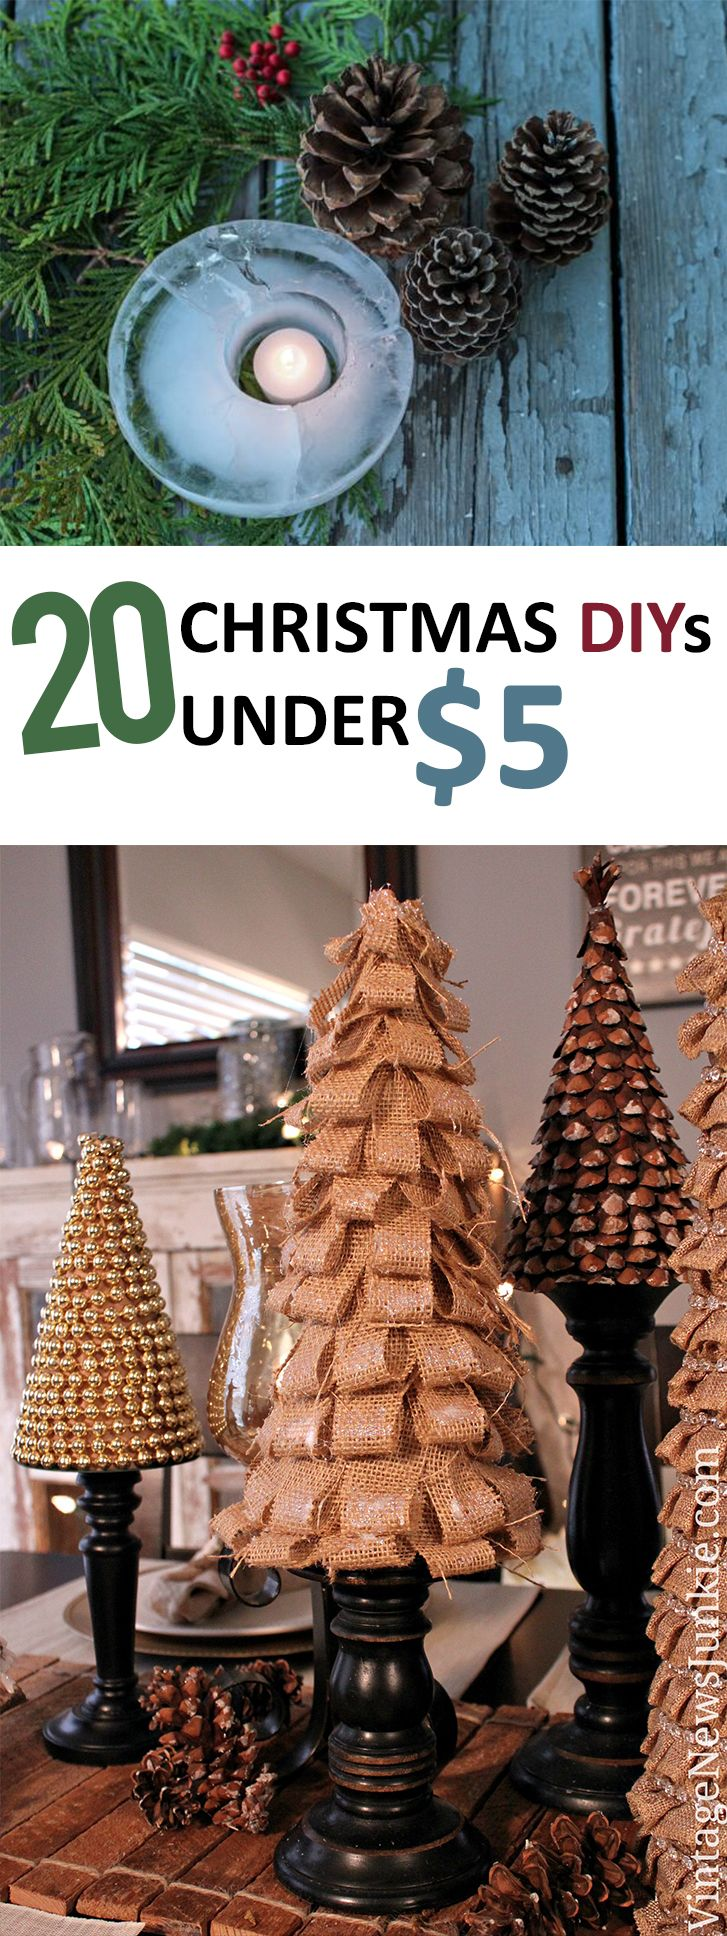 Cheap Christmas DIYs, Easy Holiday DIYs, Christmas Decor, Cheap Christmas Decor, Frugal Holiday Decorating, Cheap Decorating for the Holidays, How to Decorate for Cheap, Frugal Holiday Decor, Popular Pin